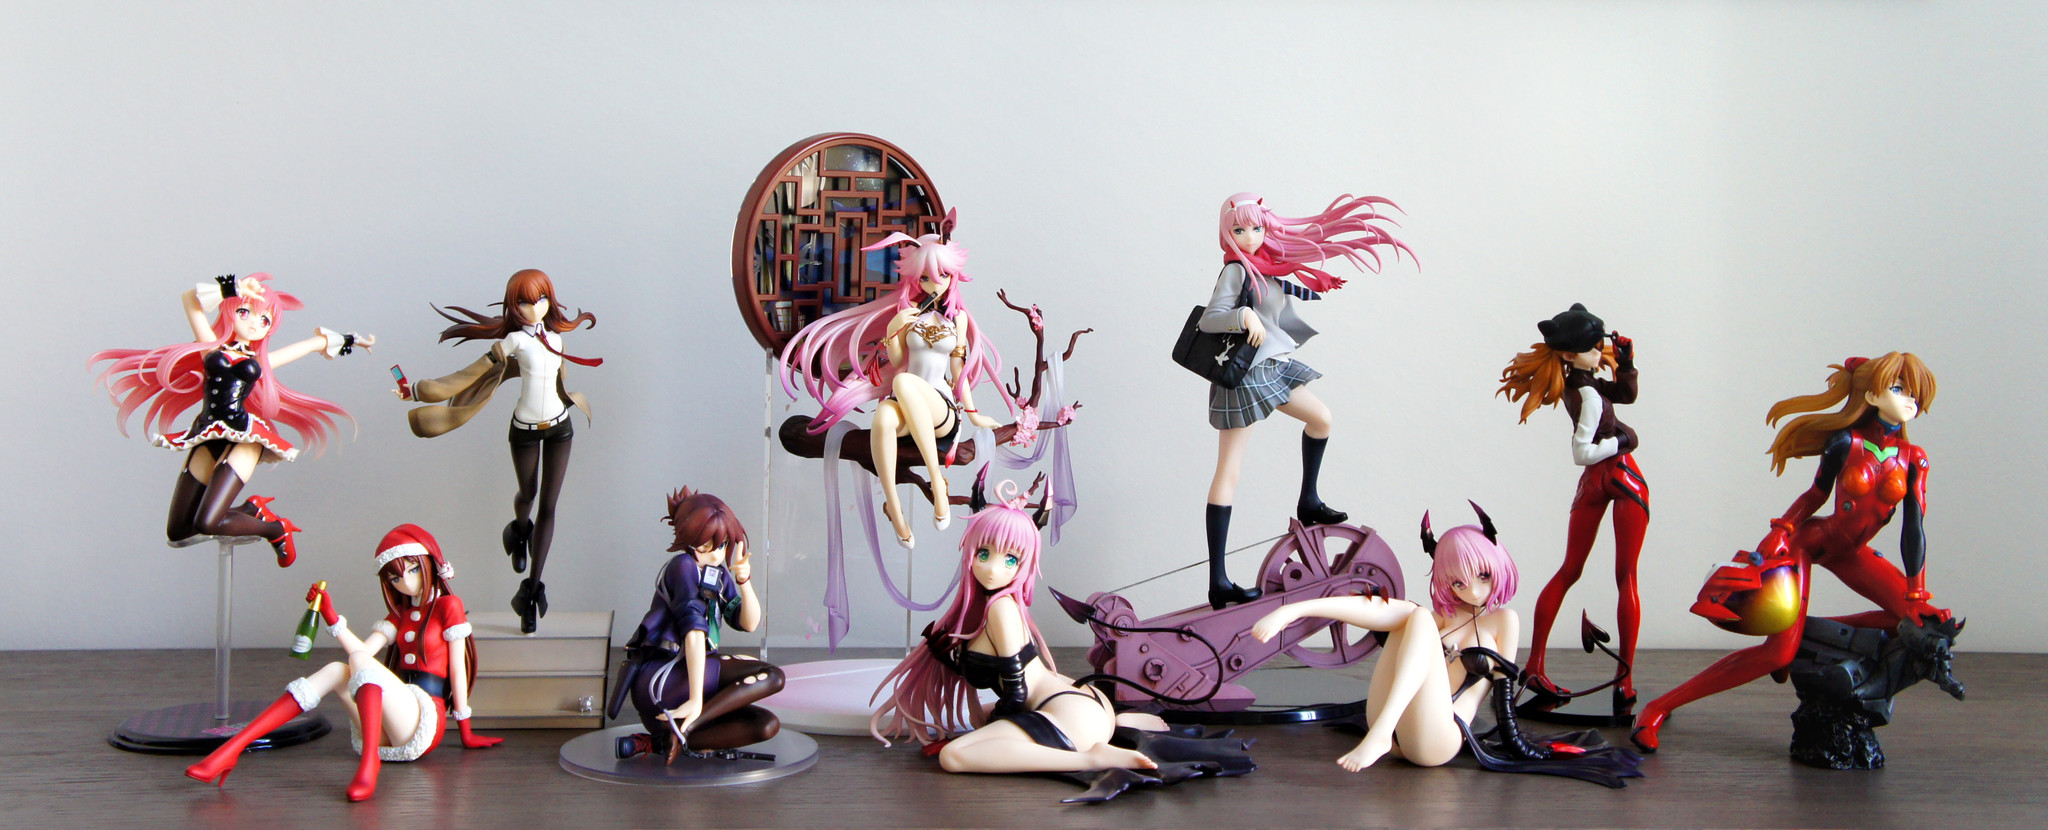 https://static.myfigurecollection.net/upload/pictures/2020/10/31/2552454.jpeg